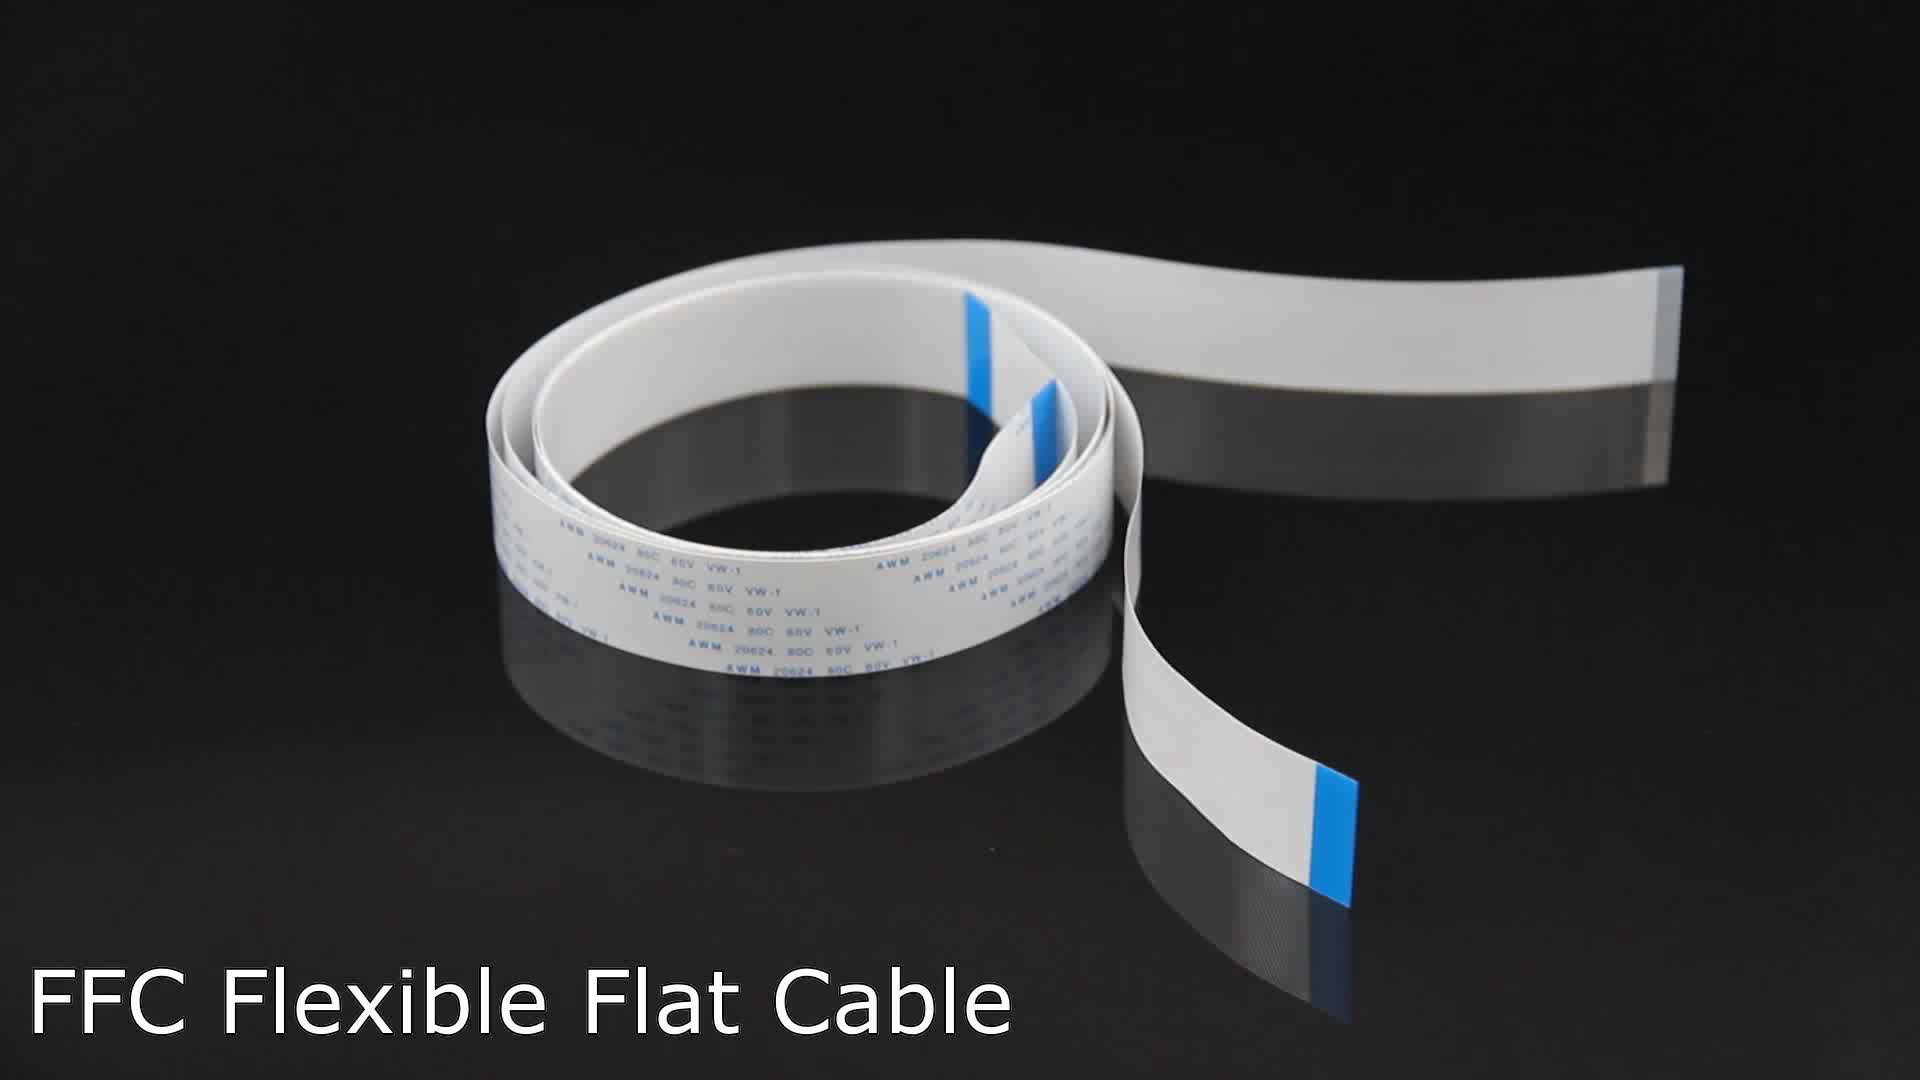 1000mm AWM 20624 80C 60V VW-1 40 Pin 0.5mm pitch FFC Flexible Flat Cable for PCB